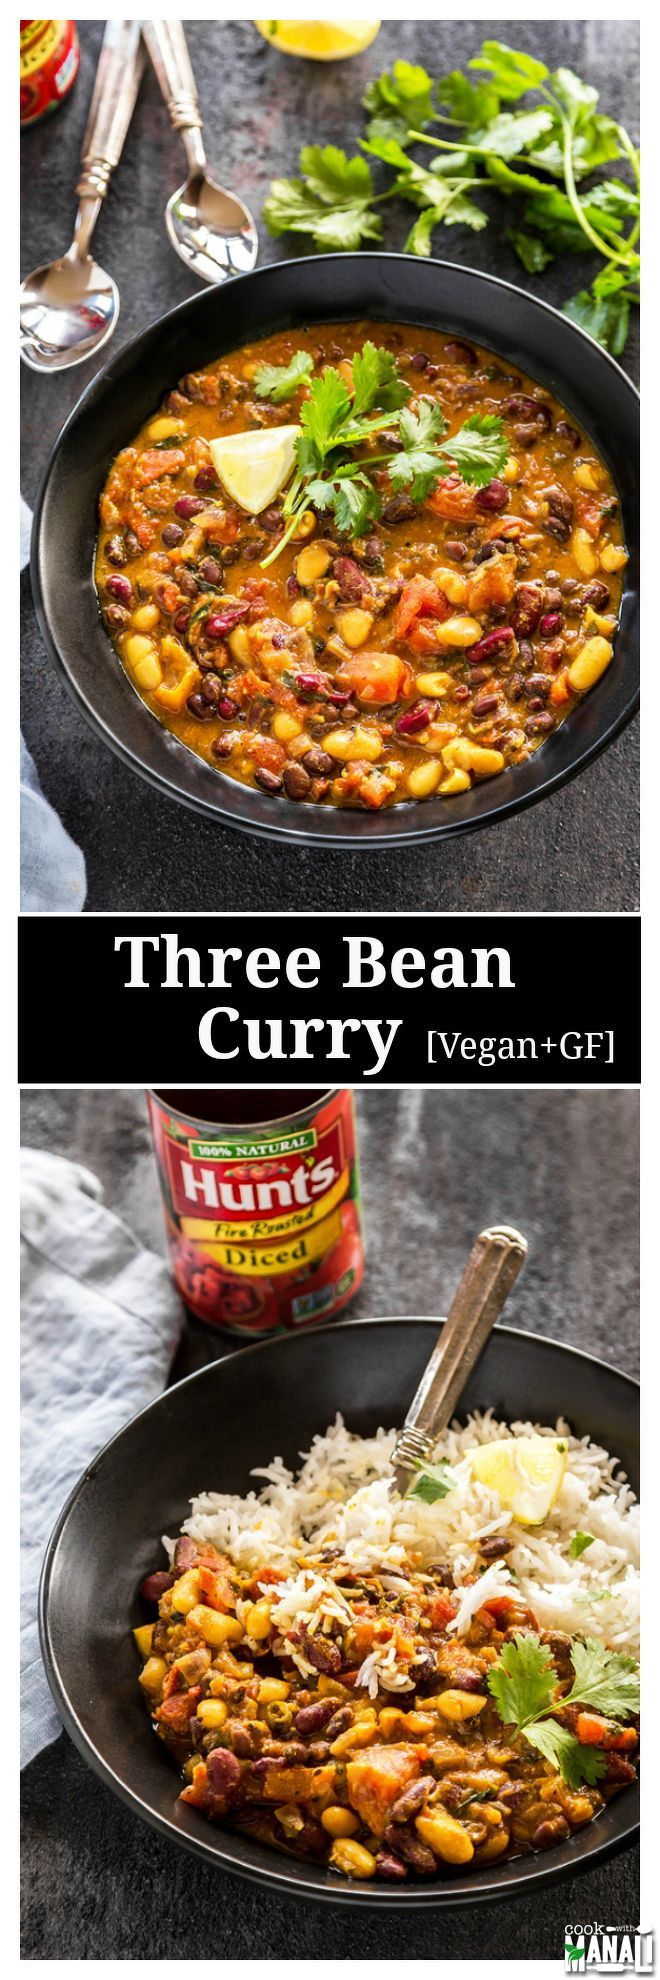 Vegan and gluten-free Three Bean Curry. Easy to make, wholesome and good for you! #HuntsHasHeart #ad @walmart @huntschef Find the recipe on www.cookwithmanali.com